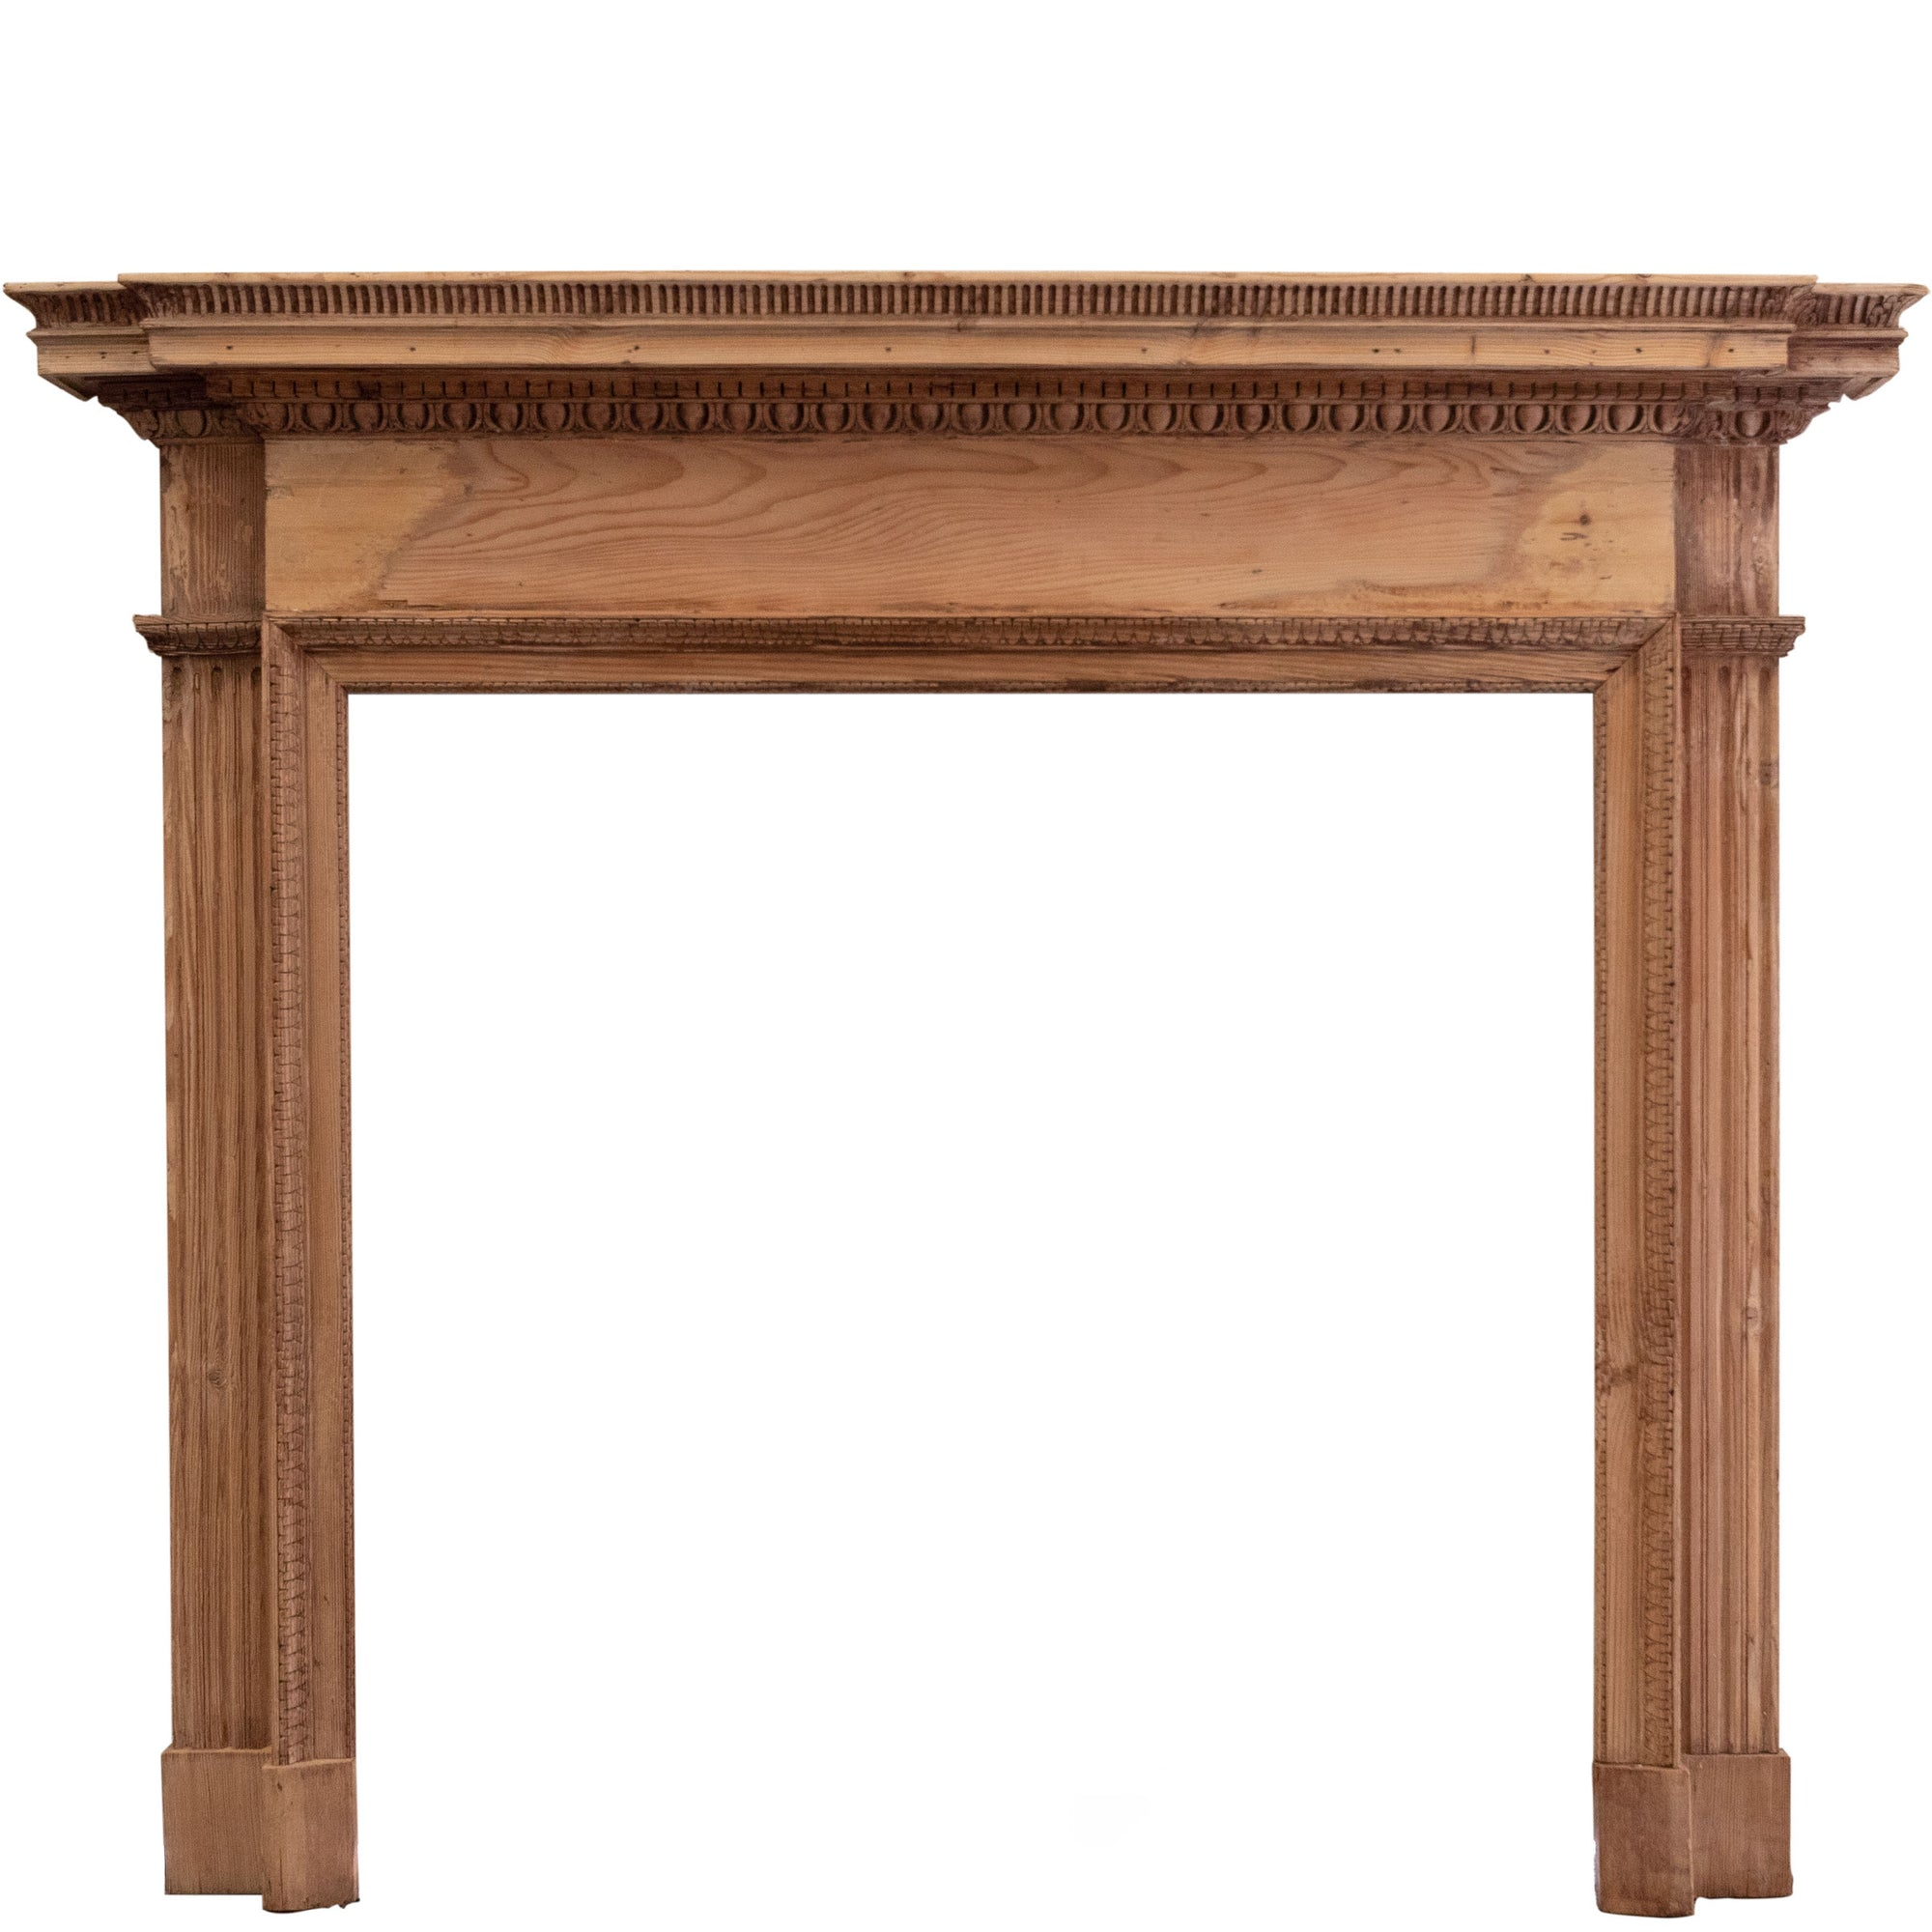 Antique Georgian Pine Fireplace Surround - architectural-forum